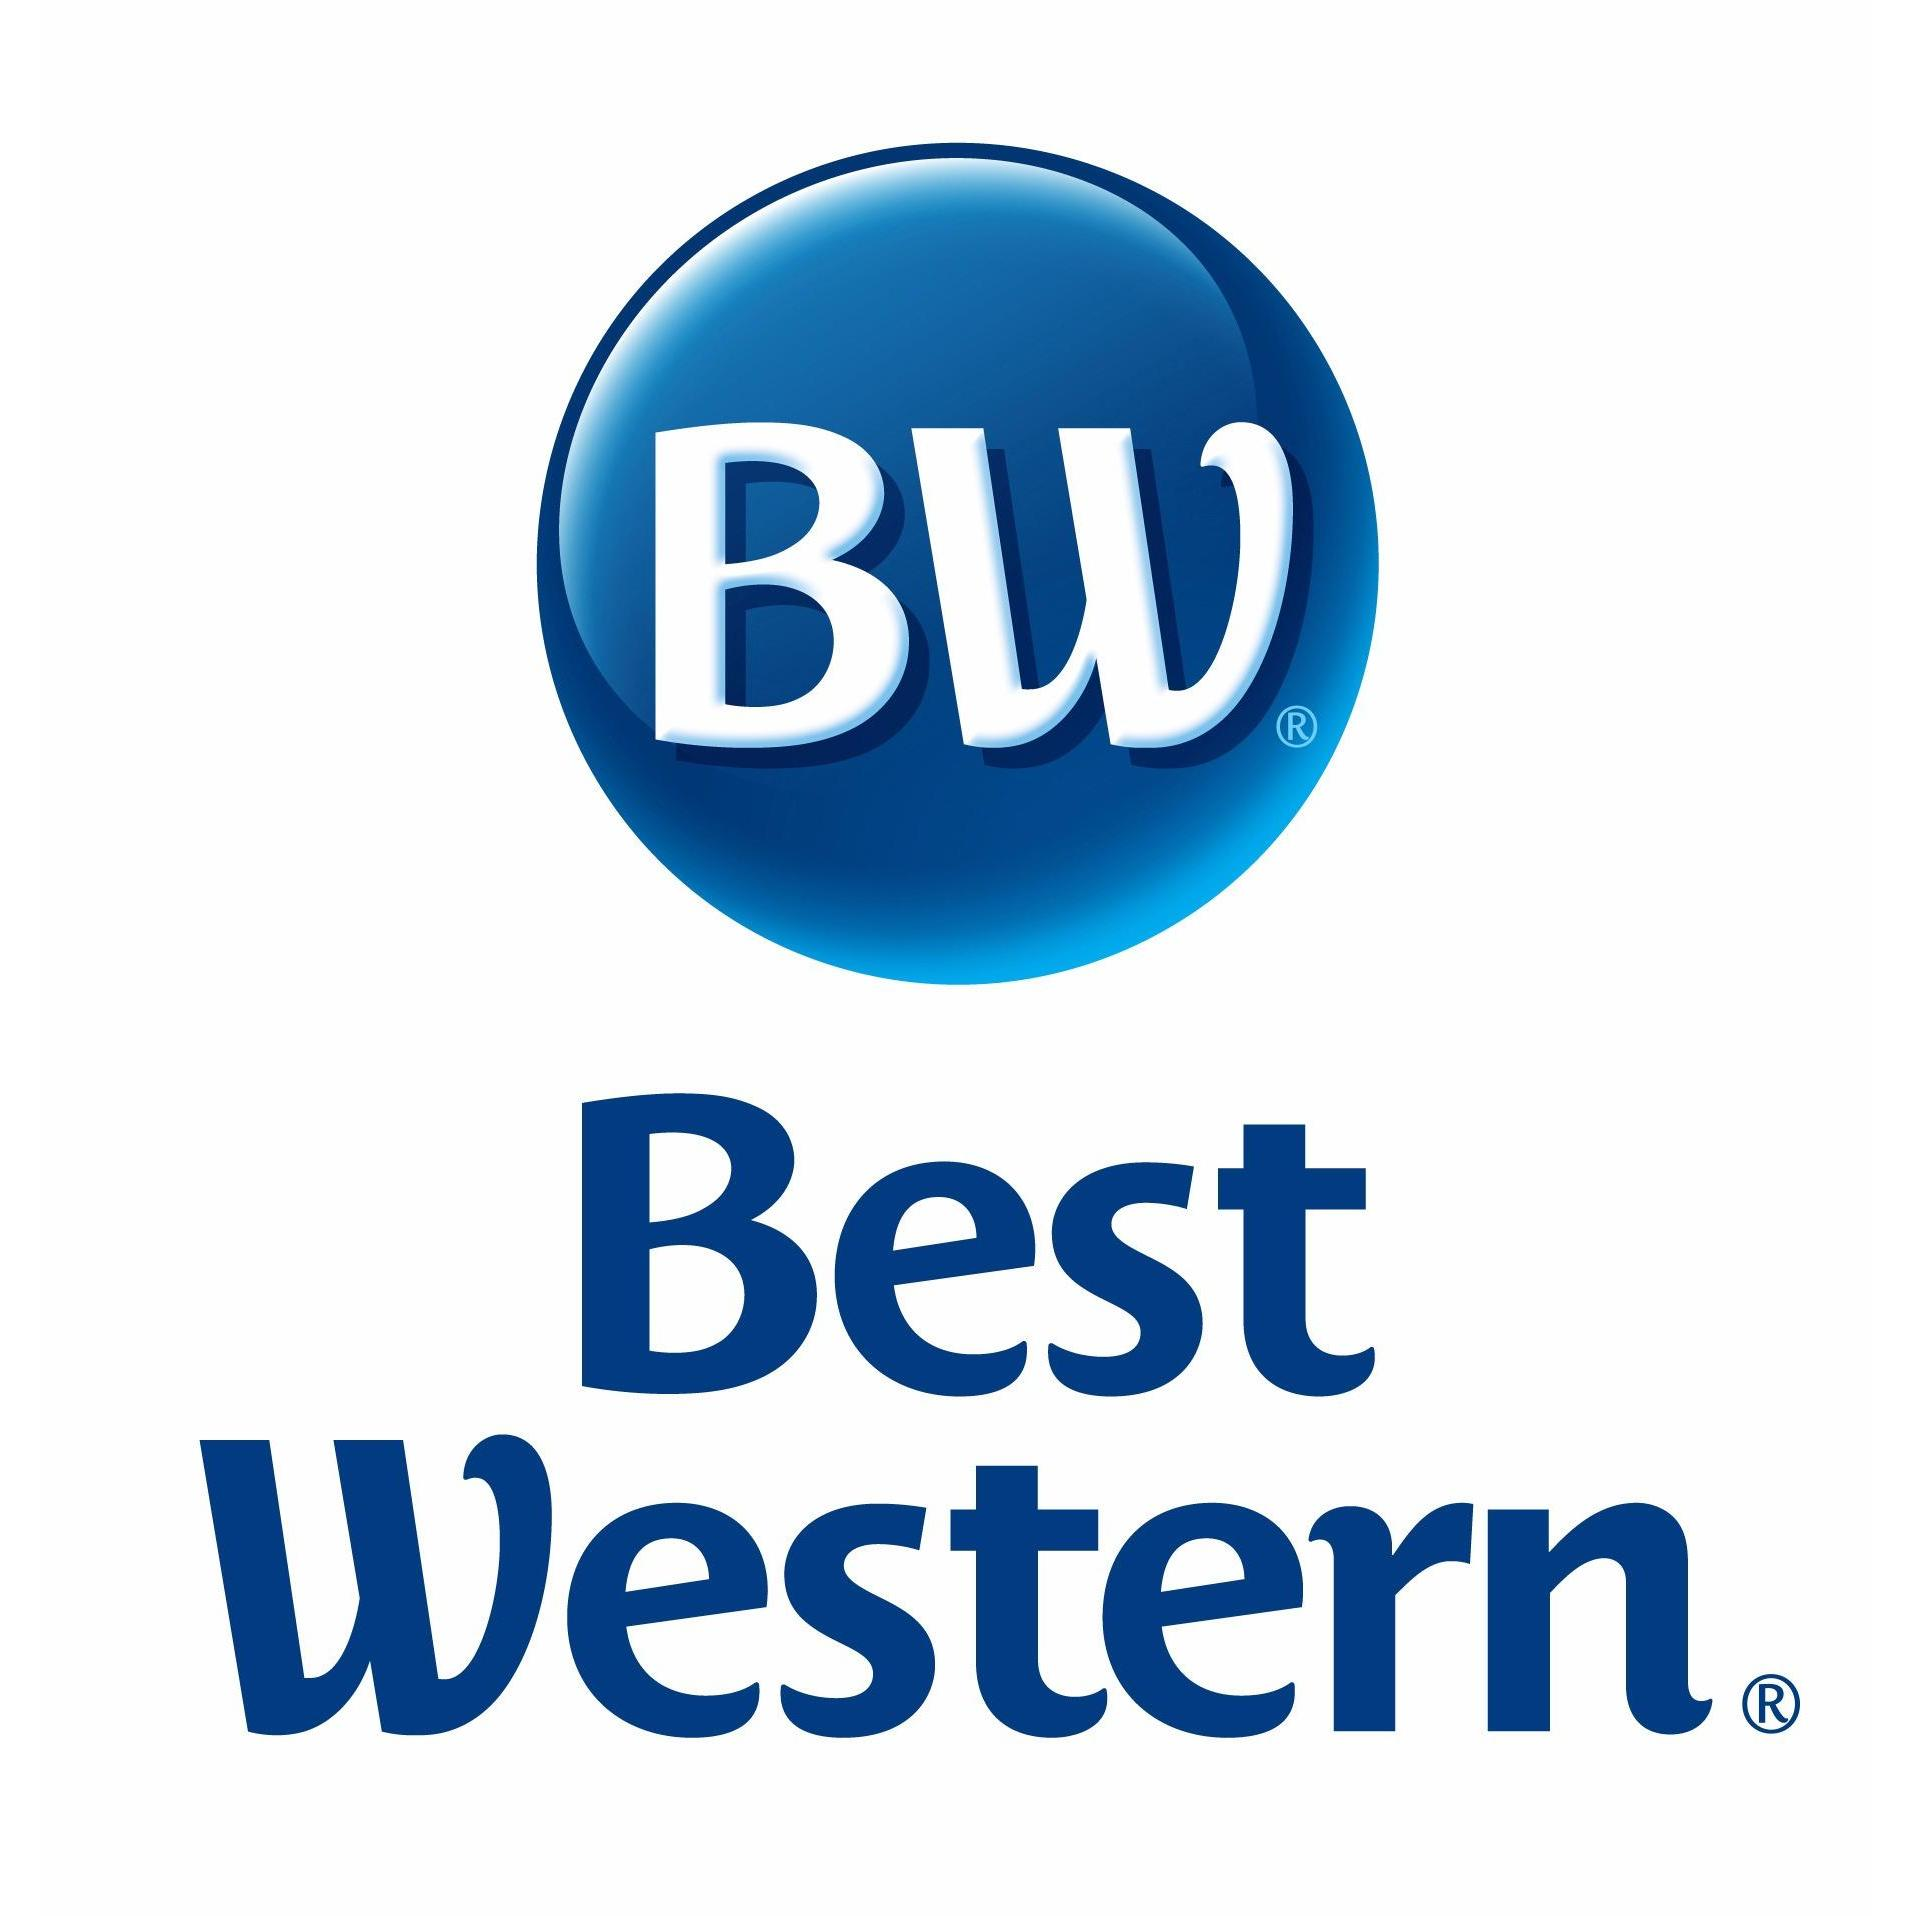 Best Western Northwest Lodge - Boise, ID - Hotels & Motels